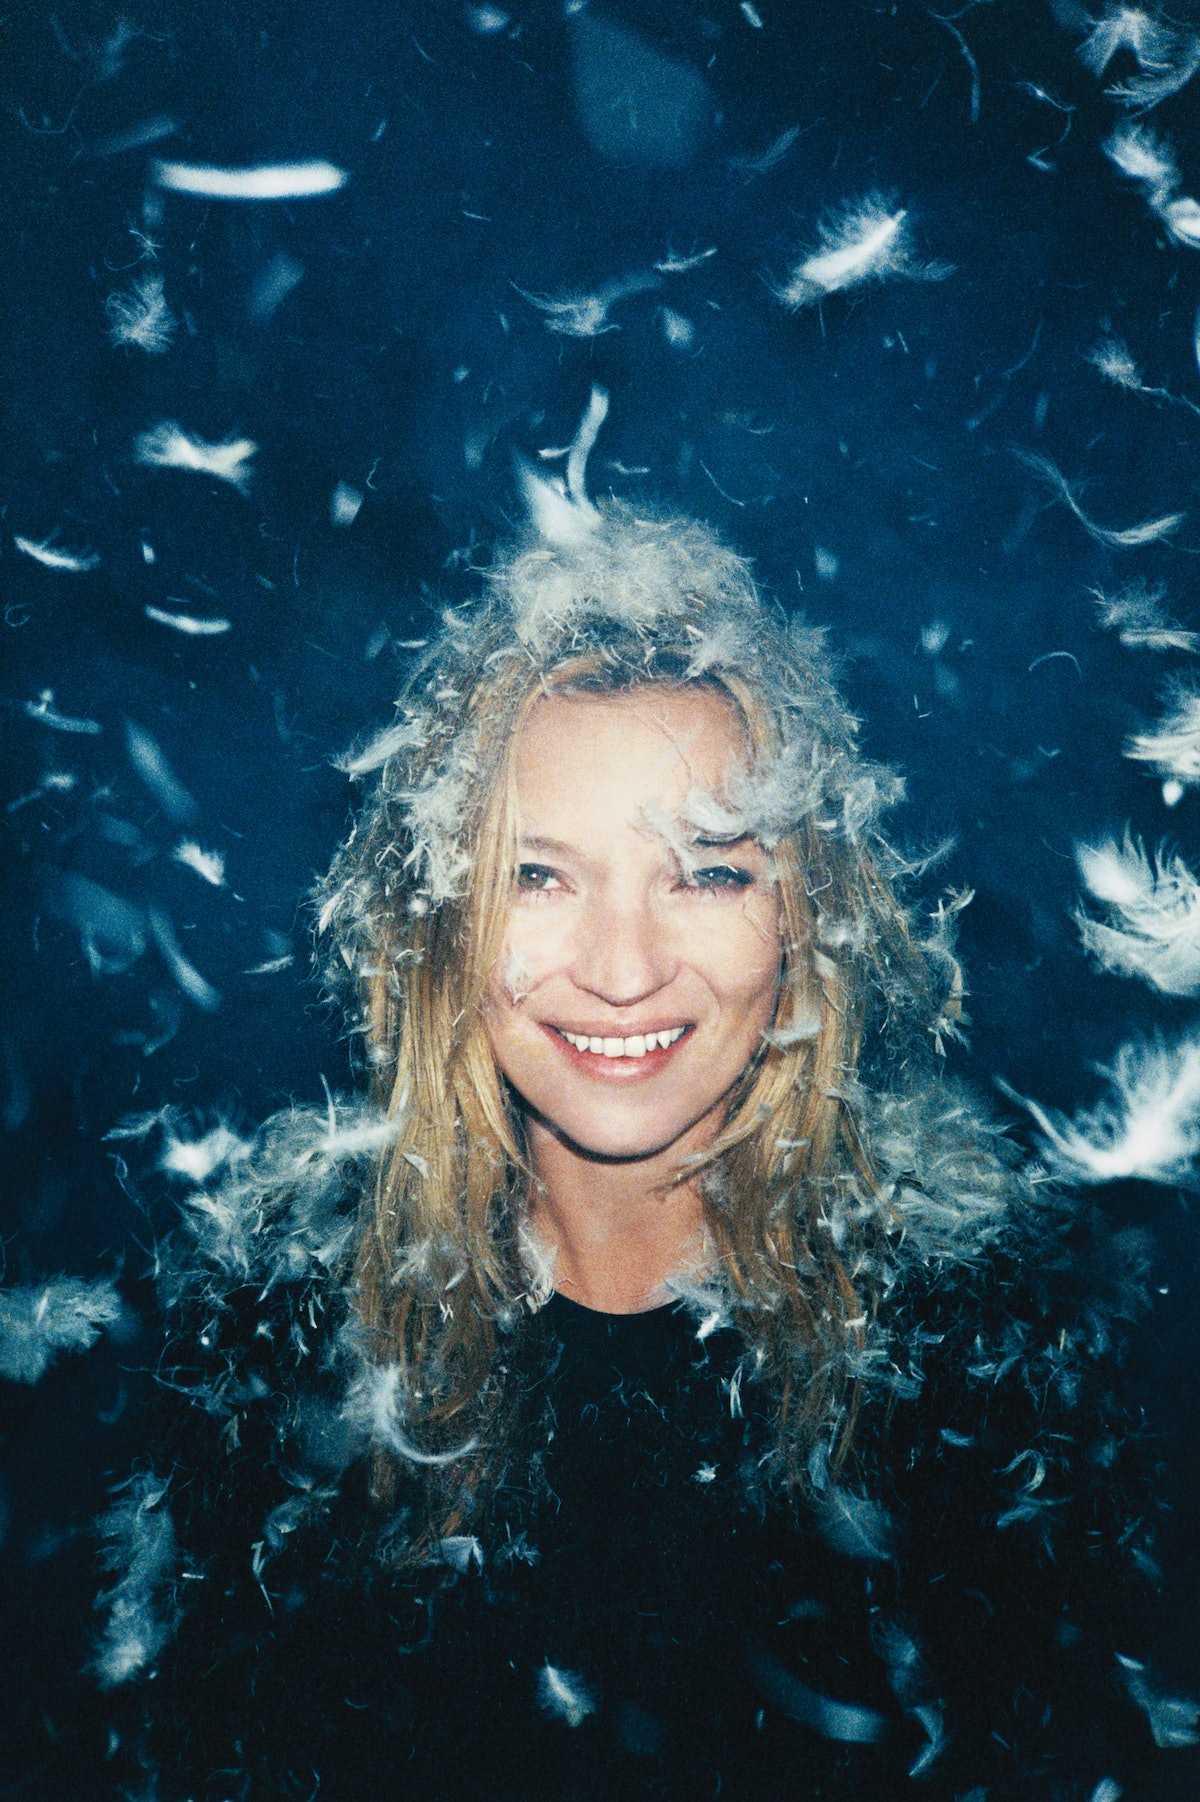 """Ryan McGinley, one of photography's brightest young stars, takes Kate Moss on an ethereal journey in """"Dreamgirl,"""" page 162. Here, MaxMara's cotton sweater.DreamgirlKate Moss gets gorgeous in fur and feathers."""